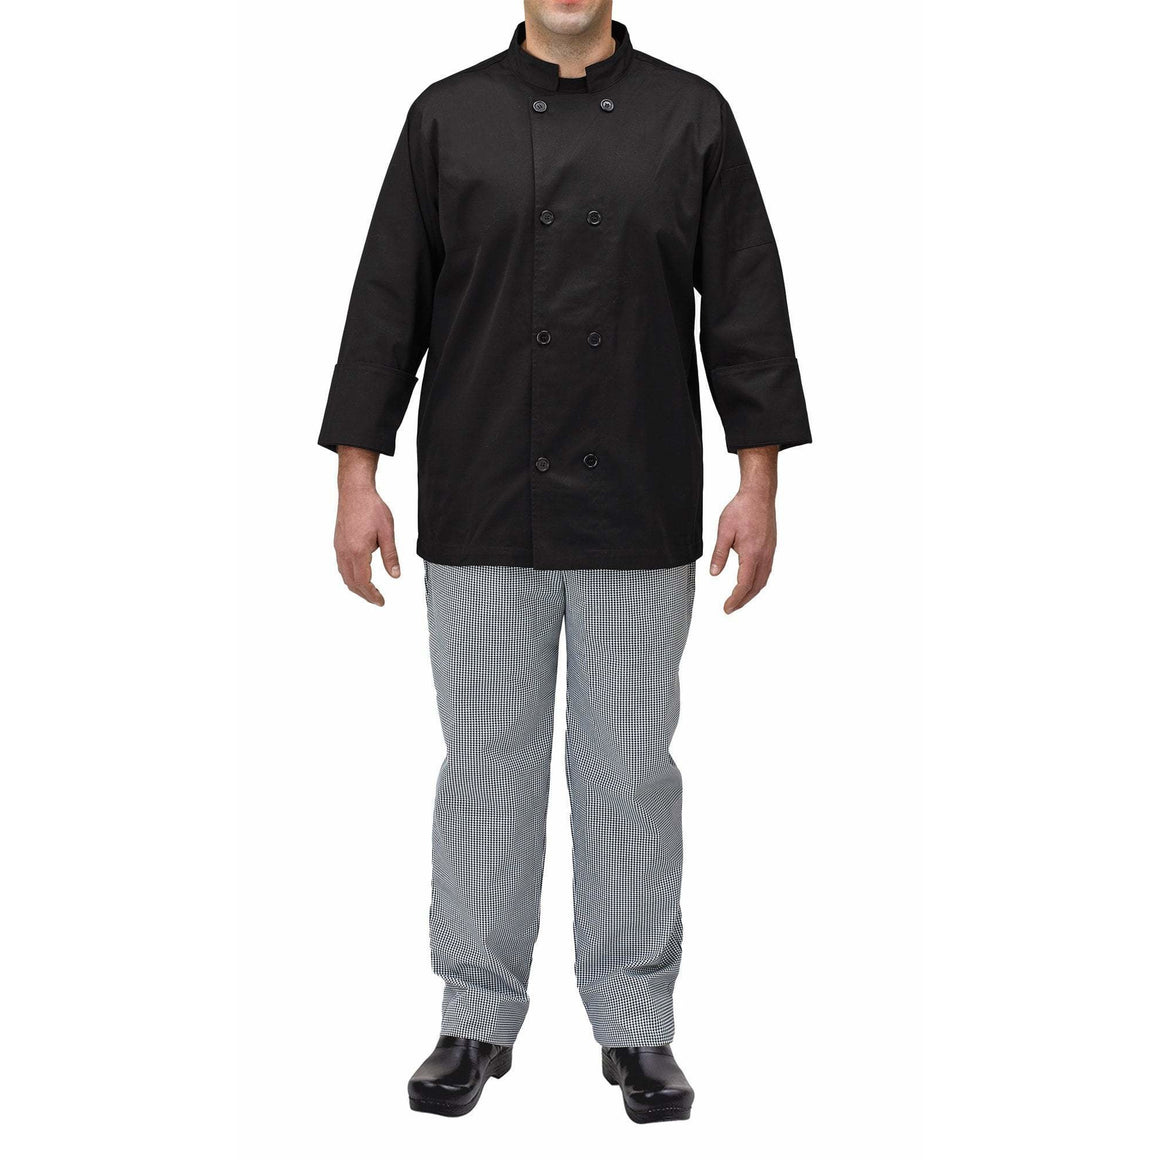 Winco - UNF-5KXXL - Chef jacket, black, 2X - Apparel